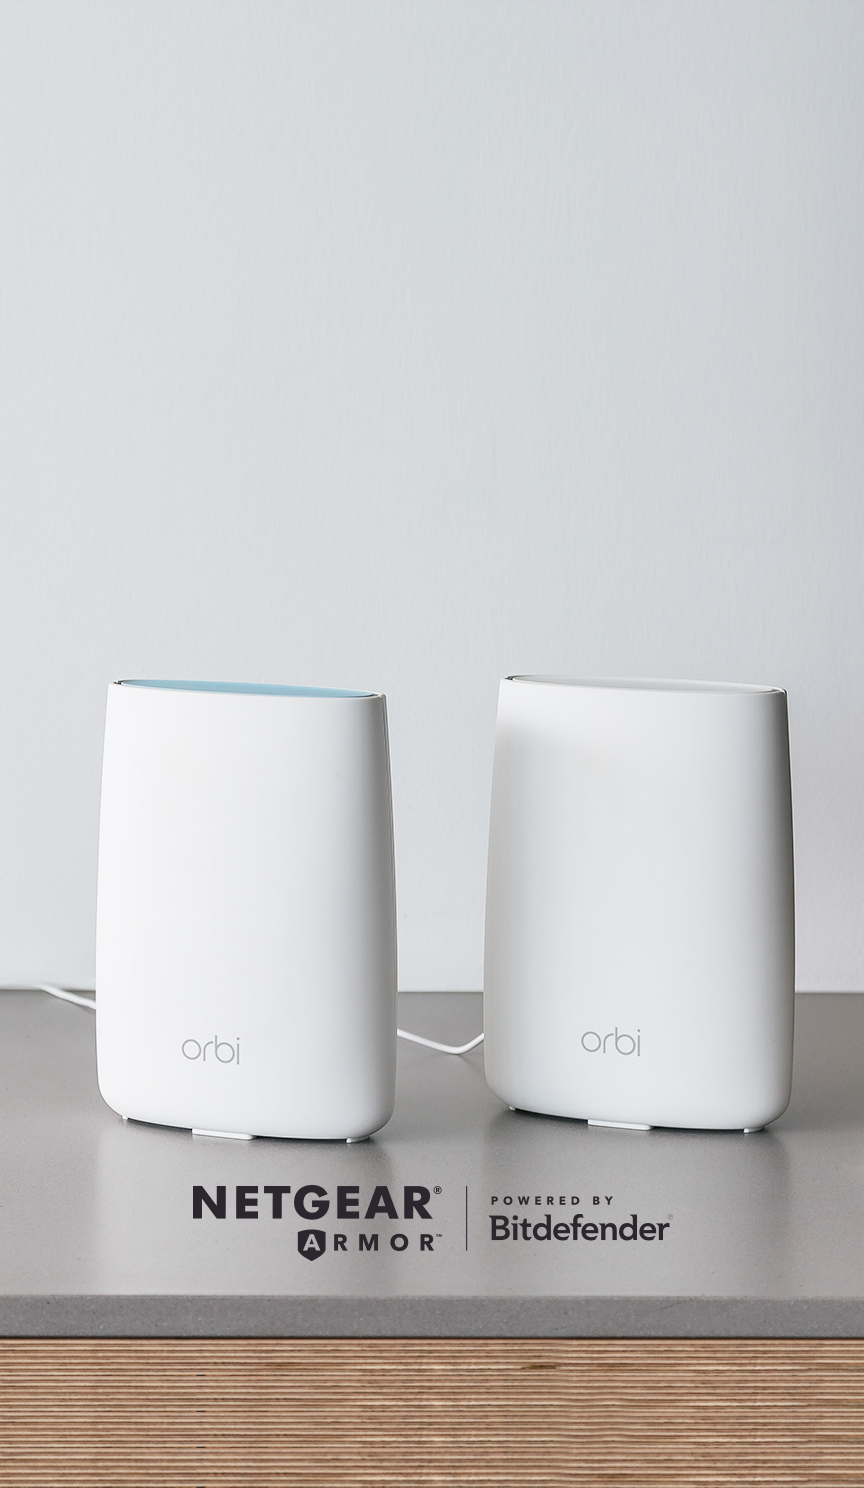 Coming soon on Orbi WiFi Systems 46aeed6035a1